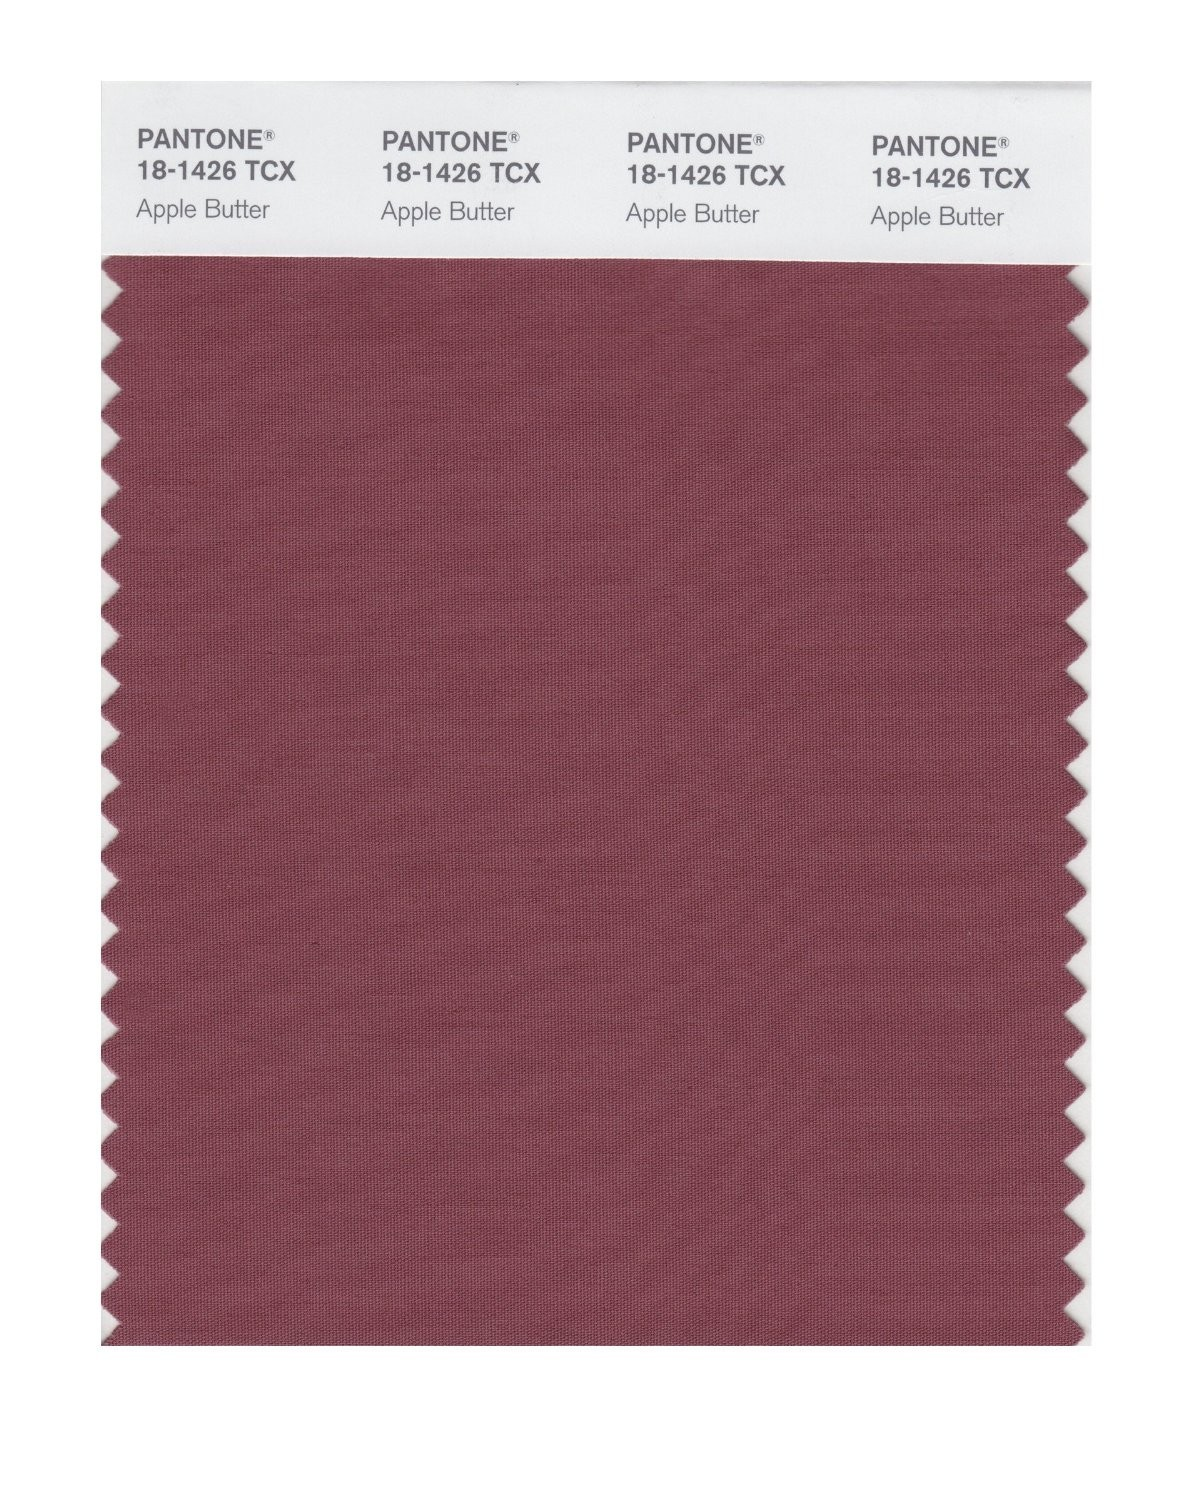 Pantone 18-1426 TCX Swatch Card Apple Butter